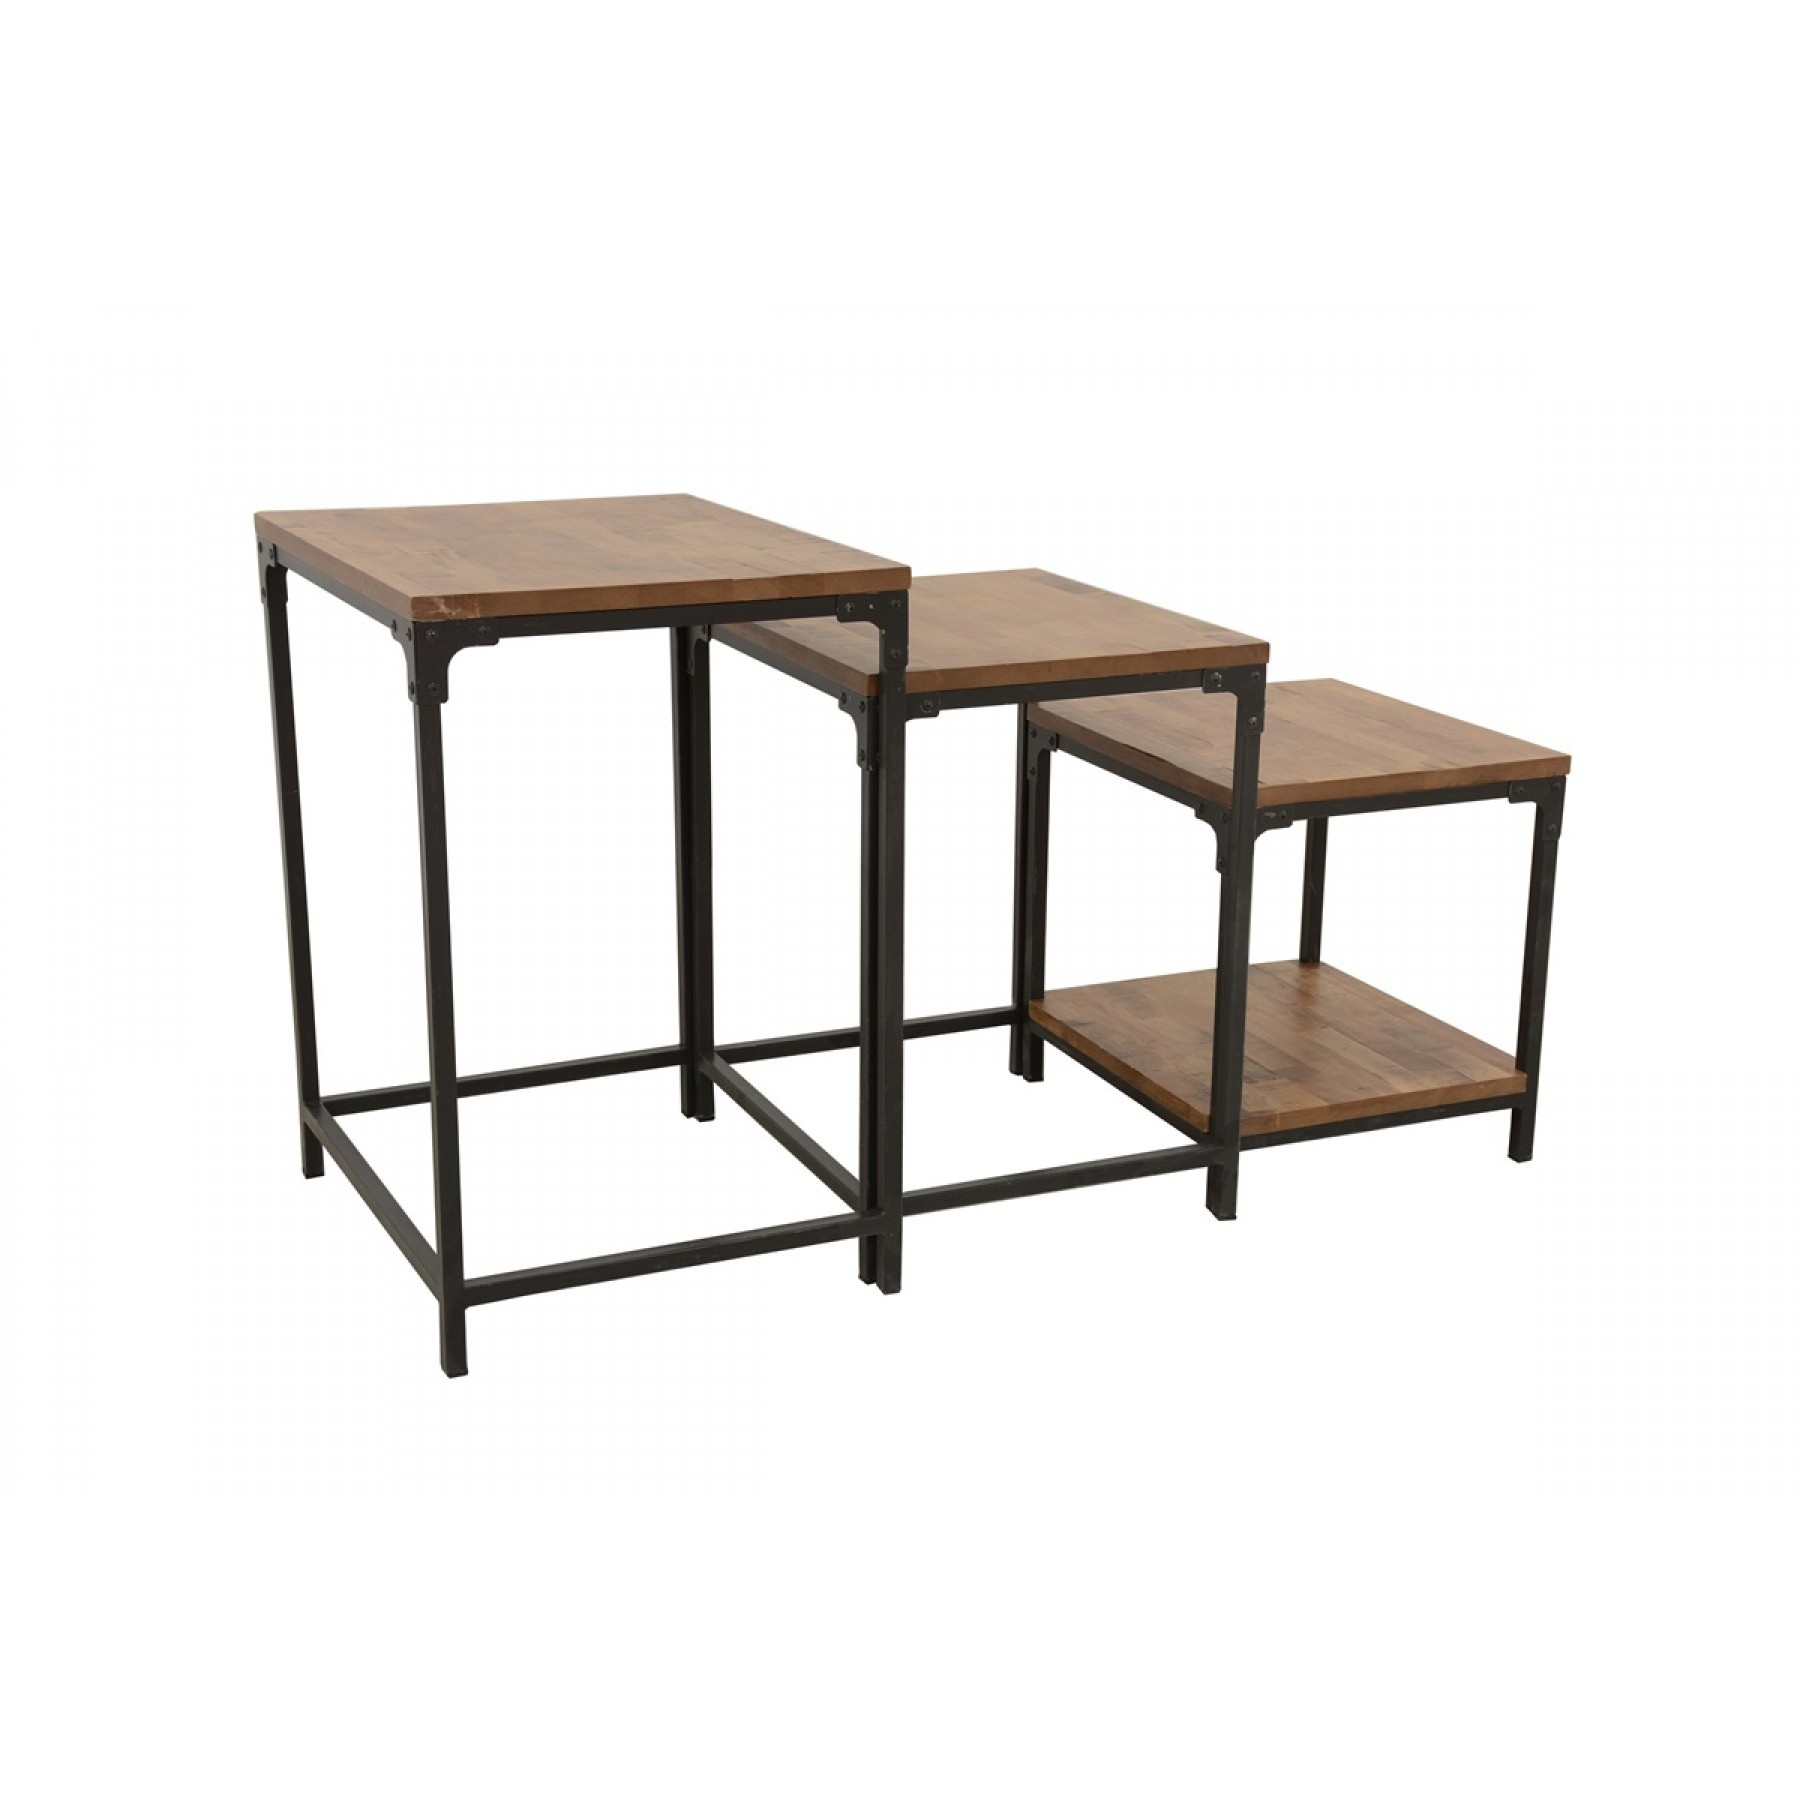 Table Gigogne En Bois Set De 3 Tables D Appoints Gigogne Plateau Bois Finition Naturelle Vieillie